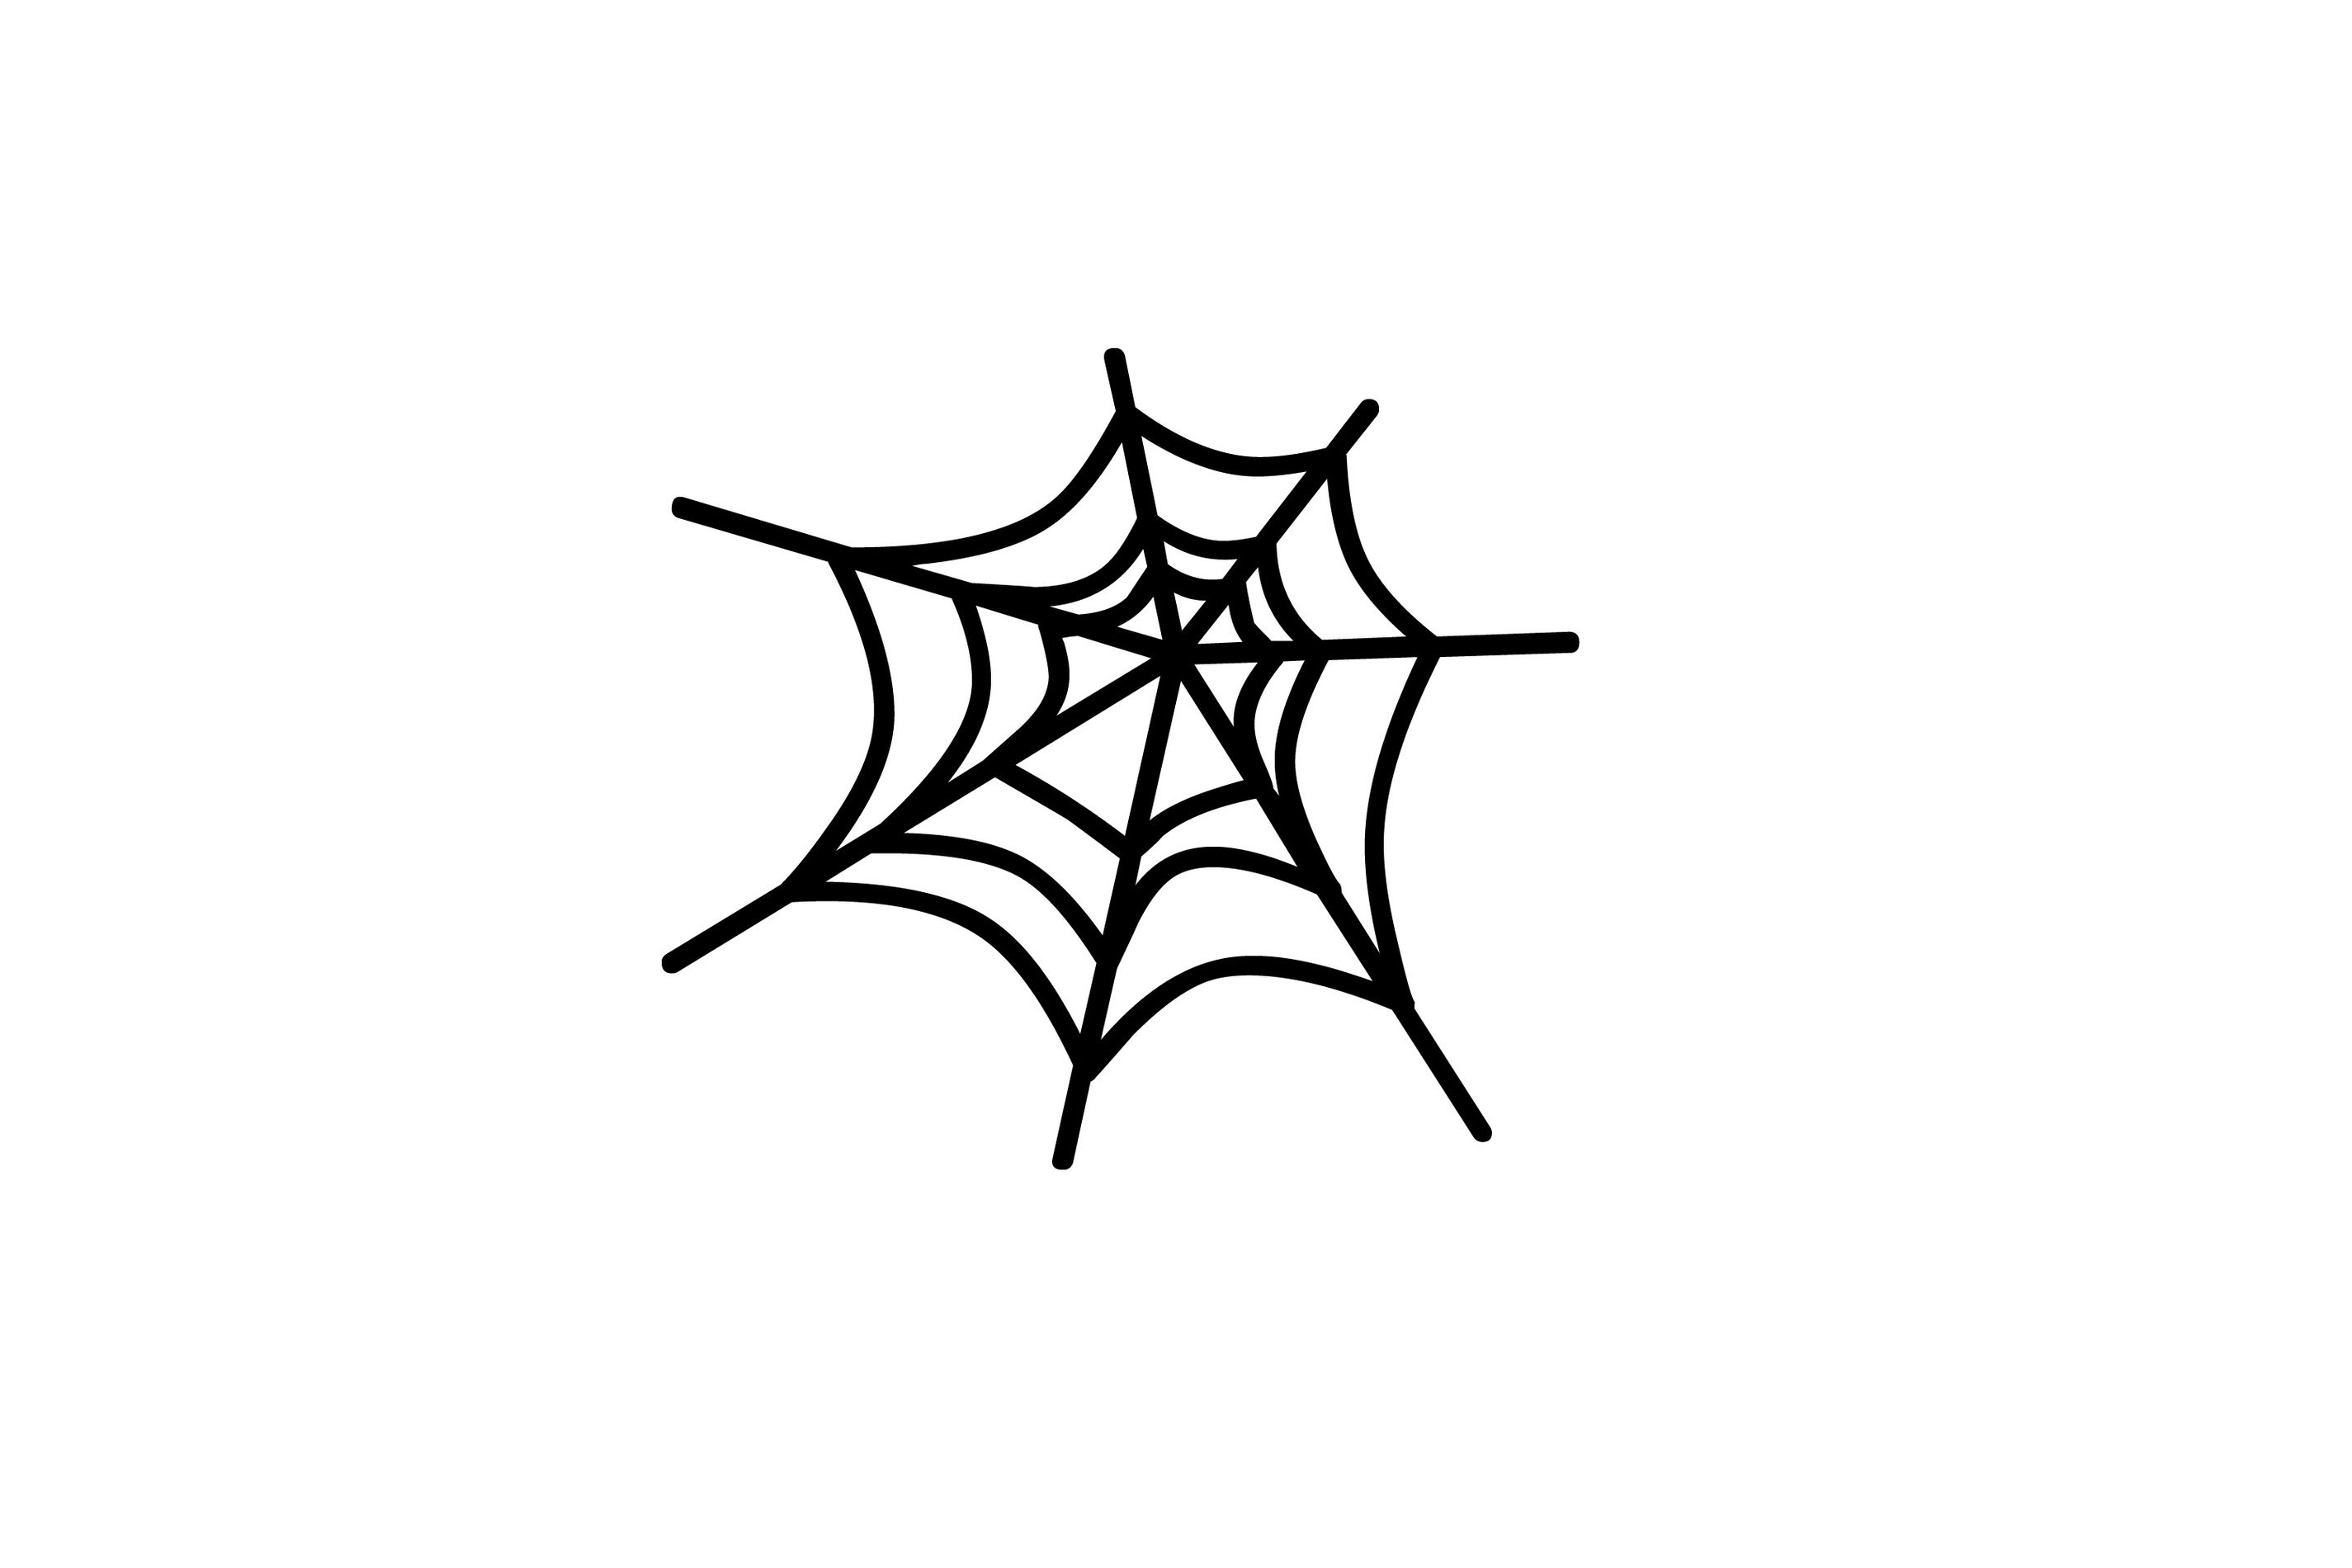 Spider Web Clipart Free To Use Clip Art -Spider web clipart free to use clip art resource 2-15